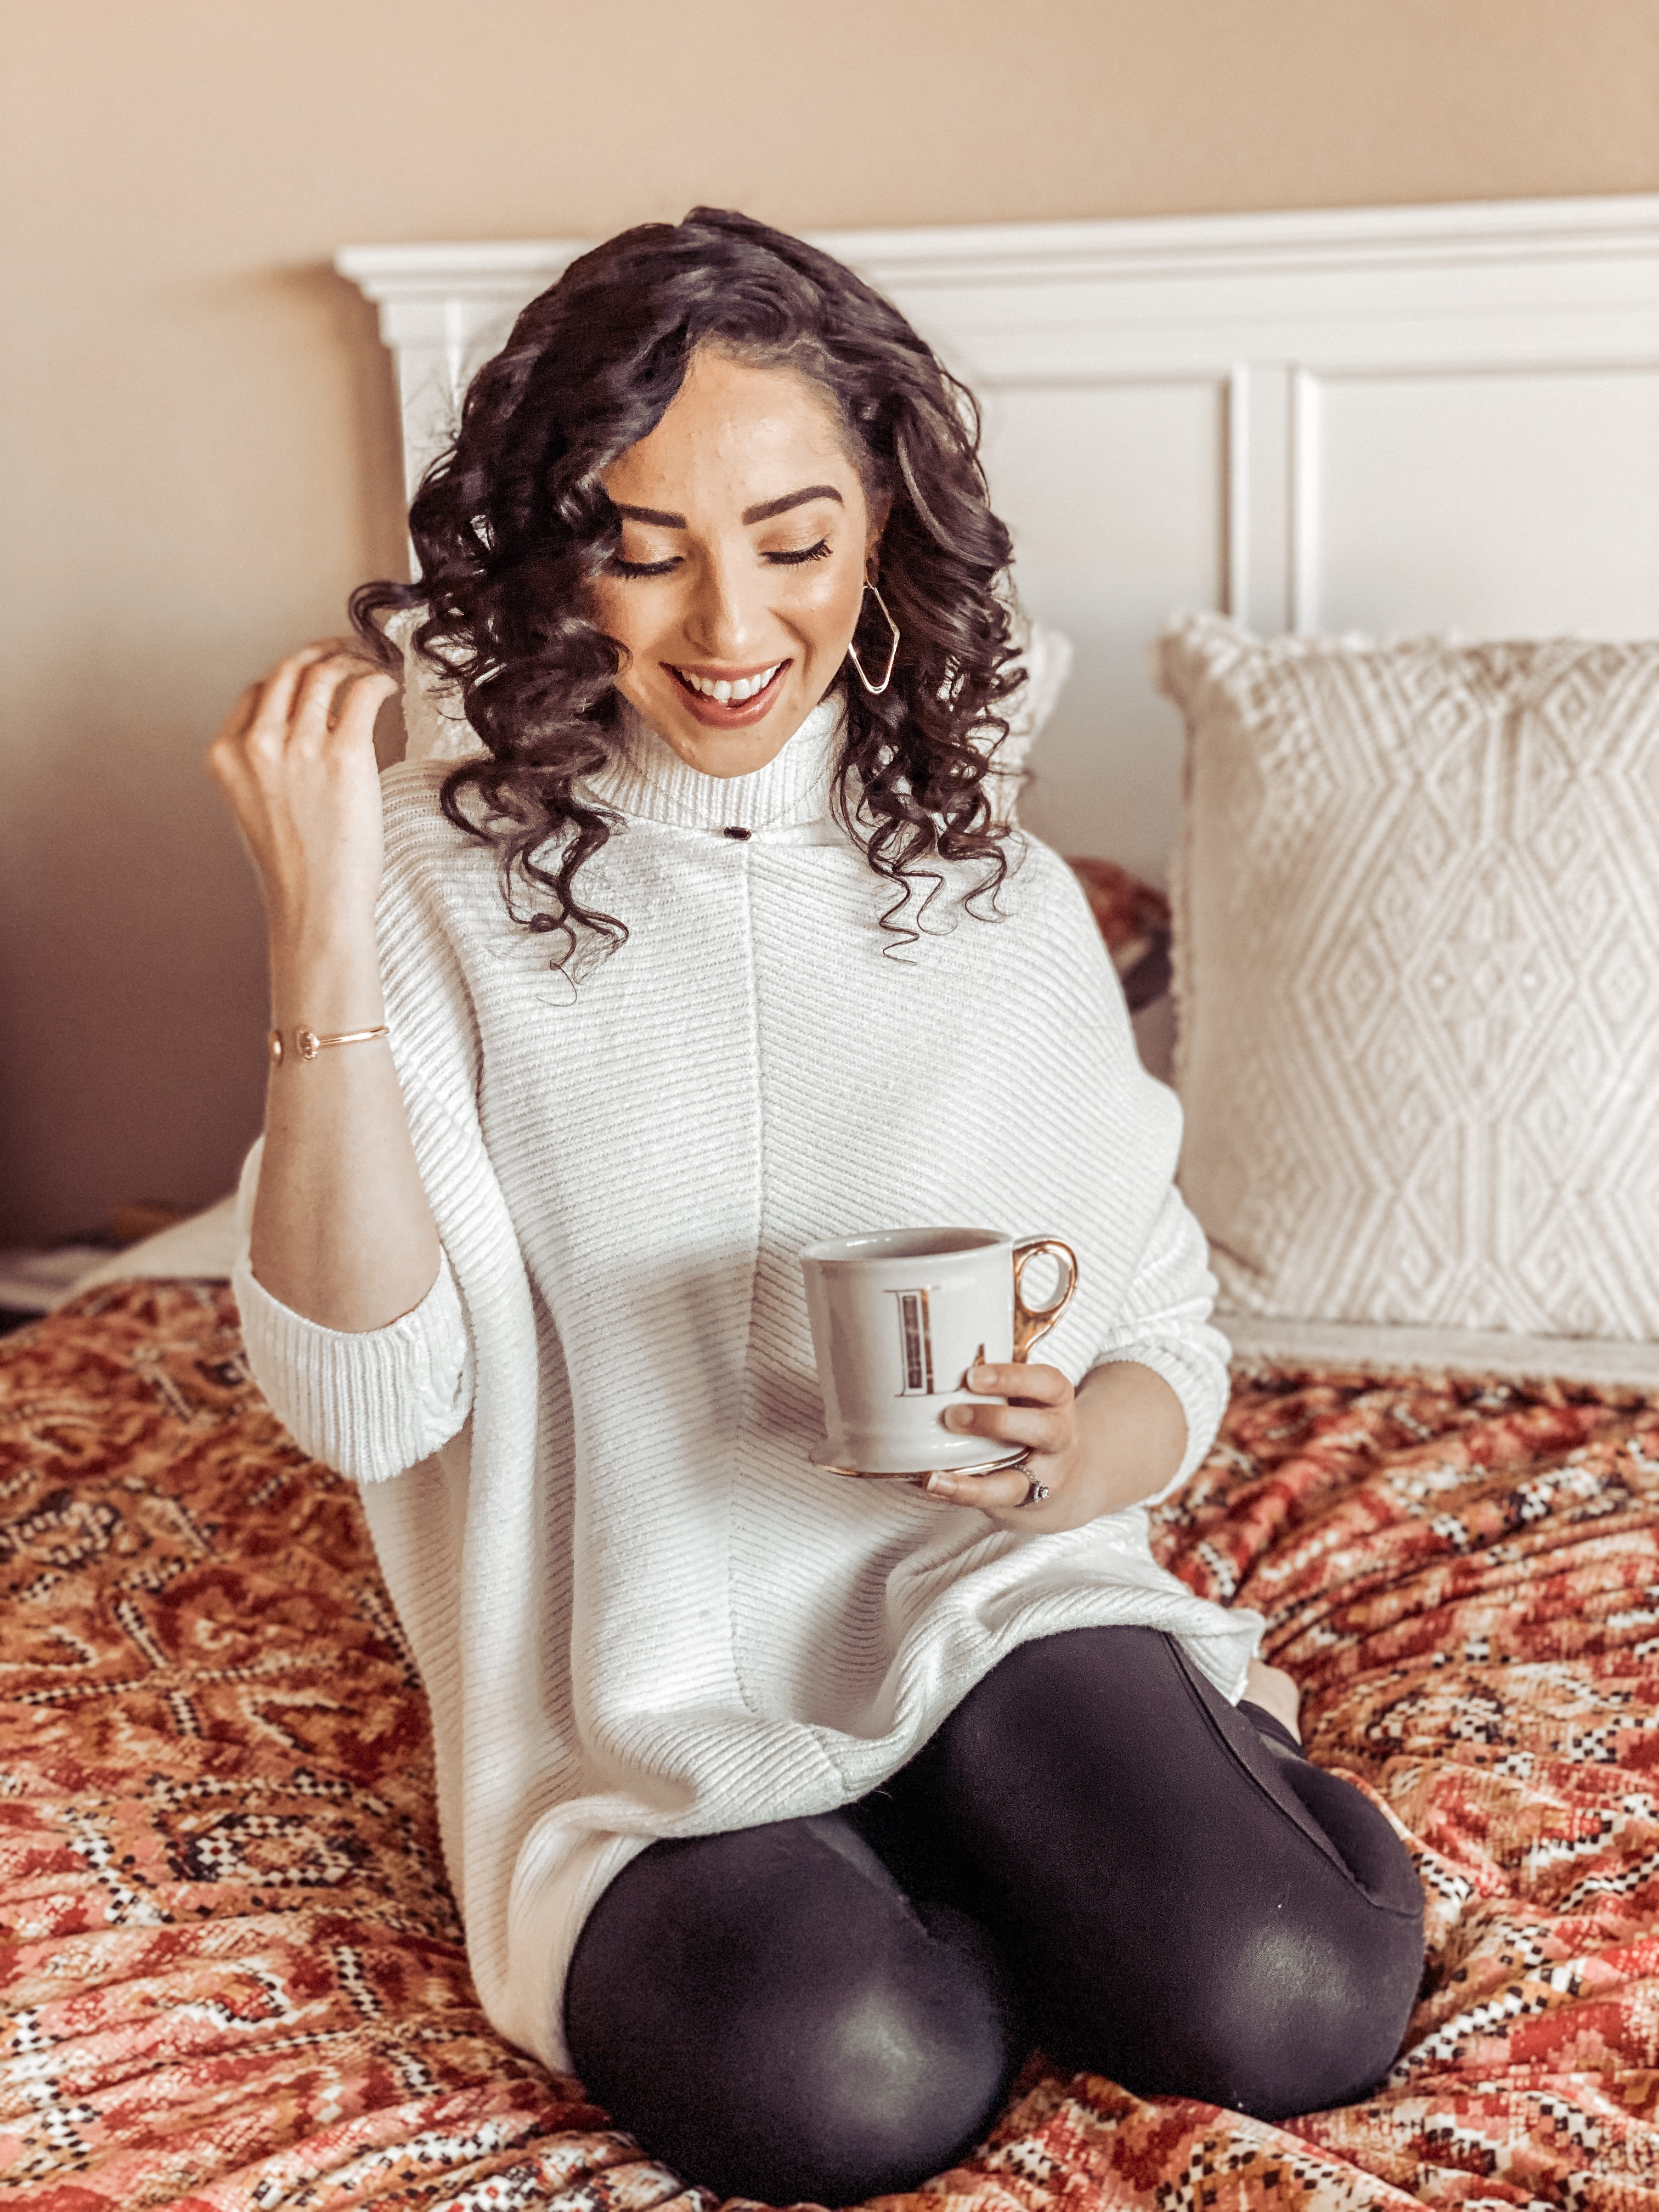 Amazon Sweater & Keurig Cinnabon Latte